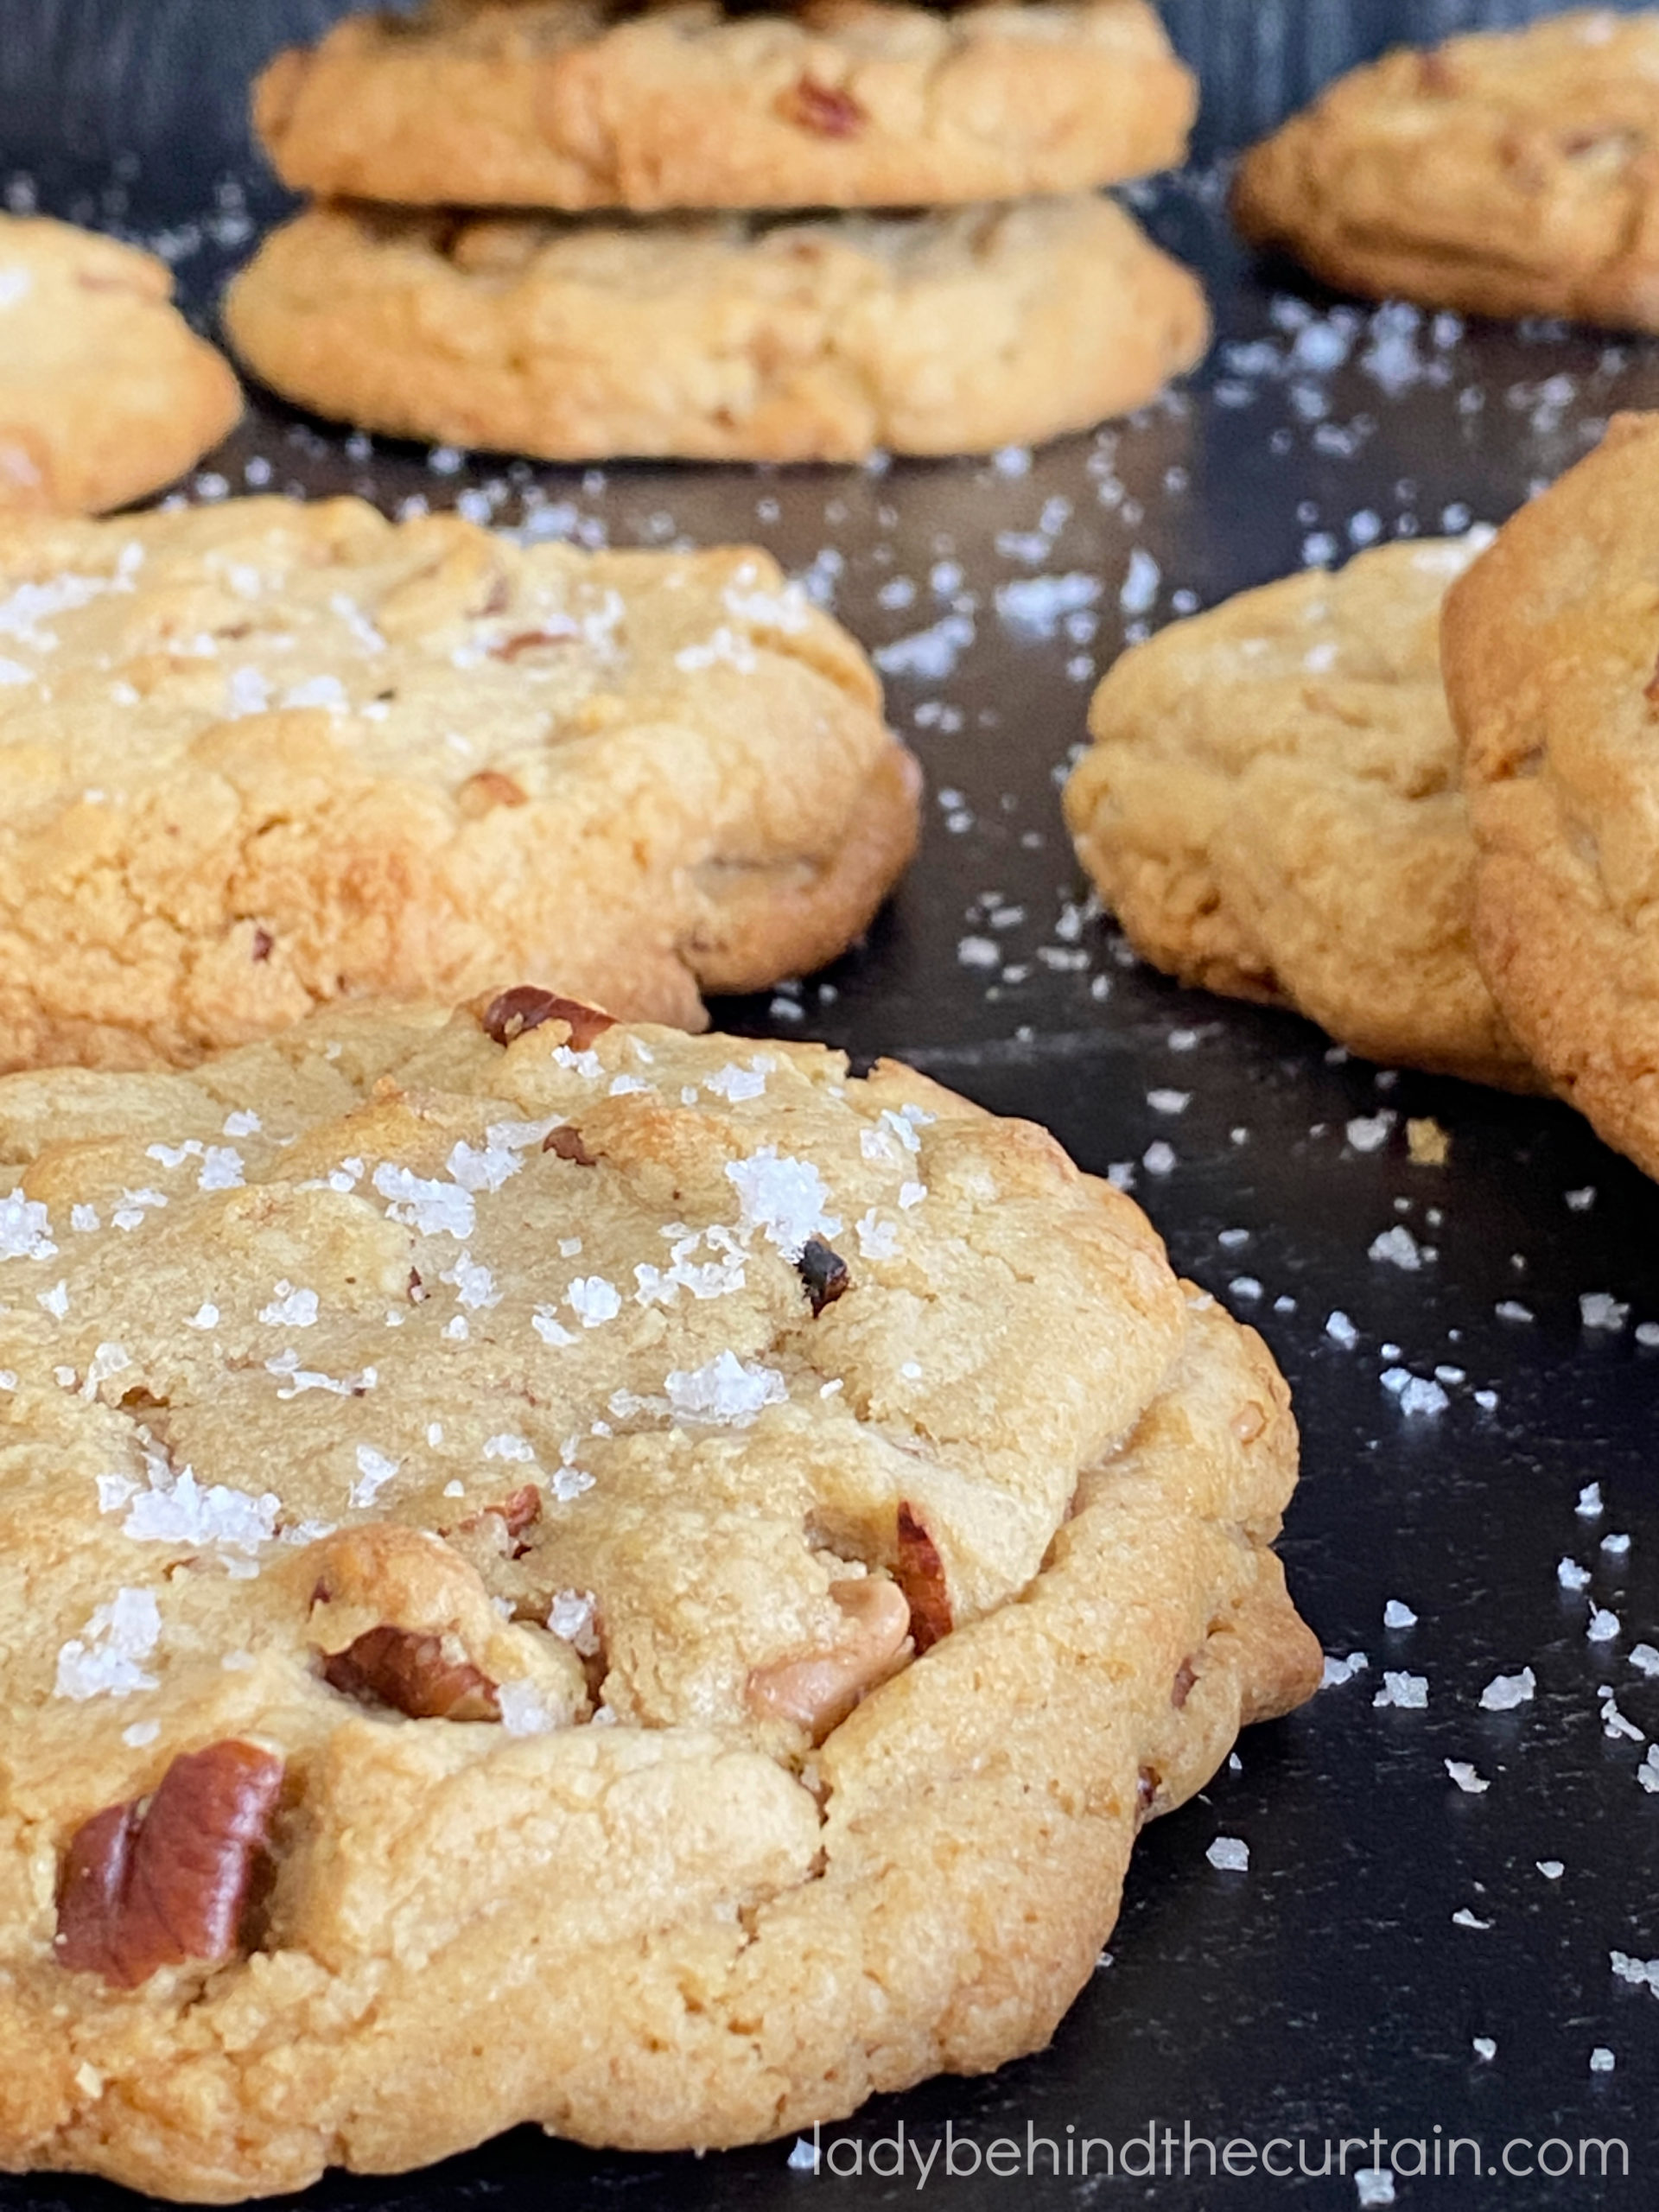 Gourmet Thick Salted Caramel Cookies